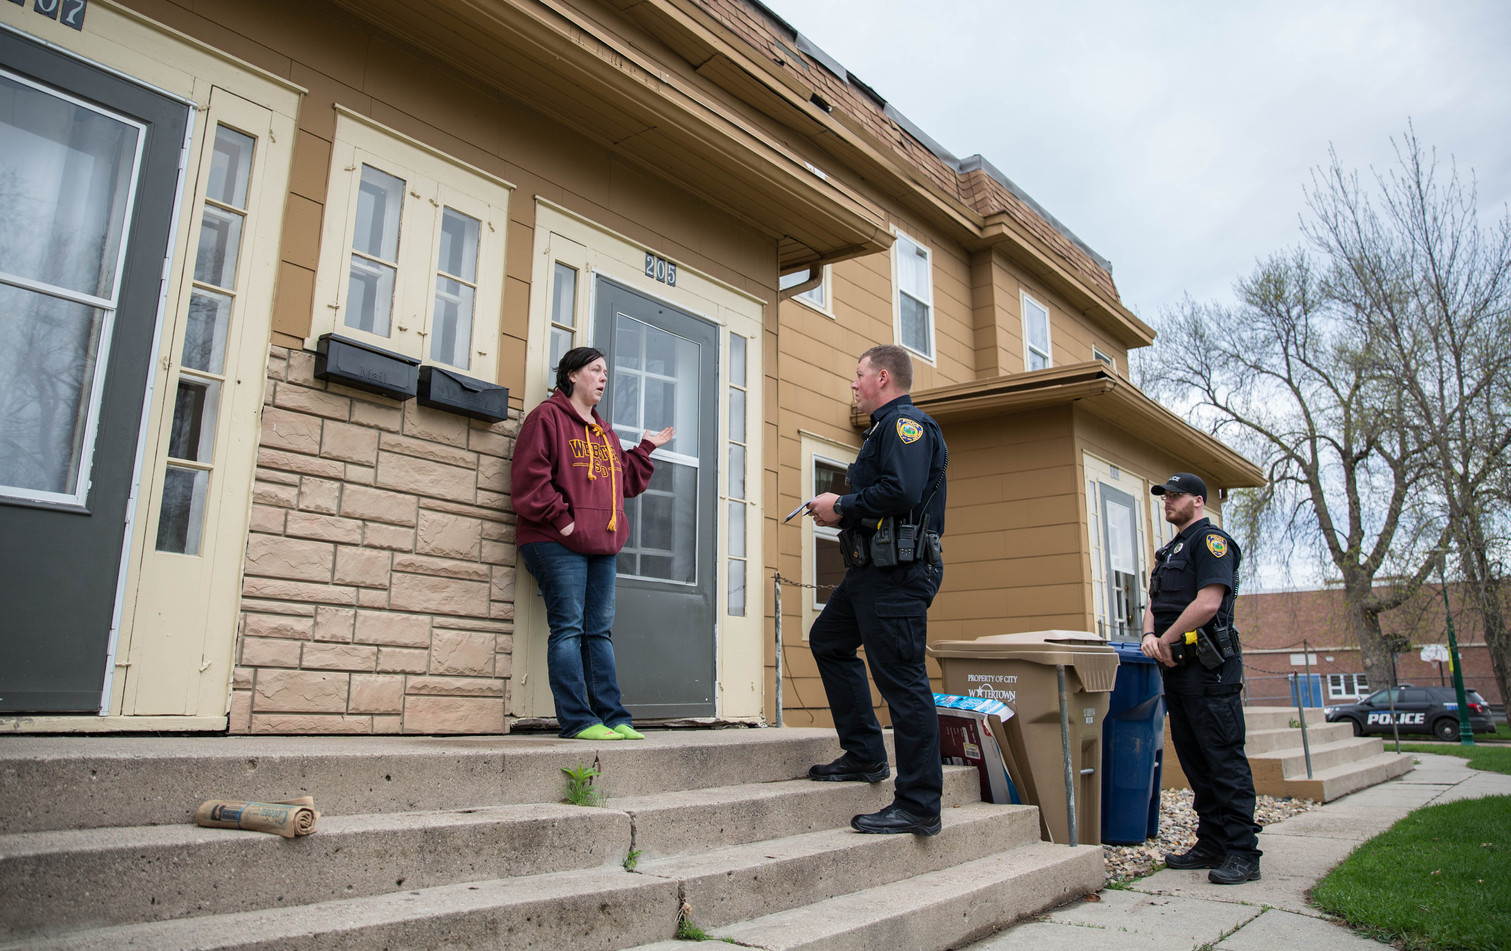 Watertown resident Kristina Hines talks to WPD officers Scott Price, middle, and Shane Hardie about a civil dispute with her ex-boyfriend. WPD respond to a variety of calls, including bar fights, drug possession and burglary, while also patrolling for traffic violations, DUIs and much more. ©2018 Grace Ramey